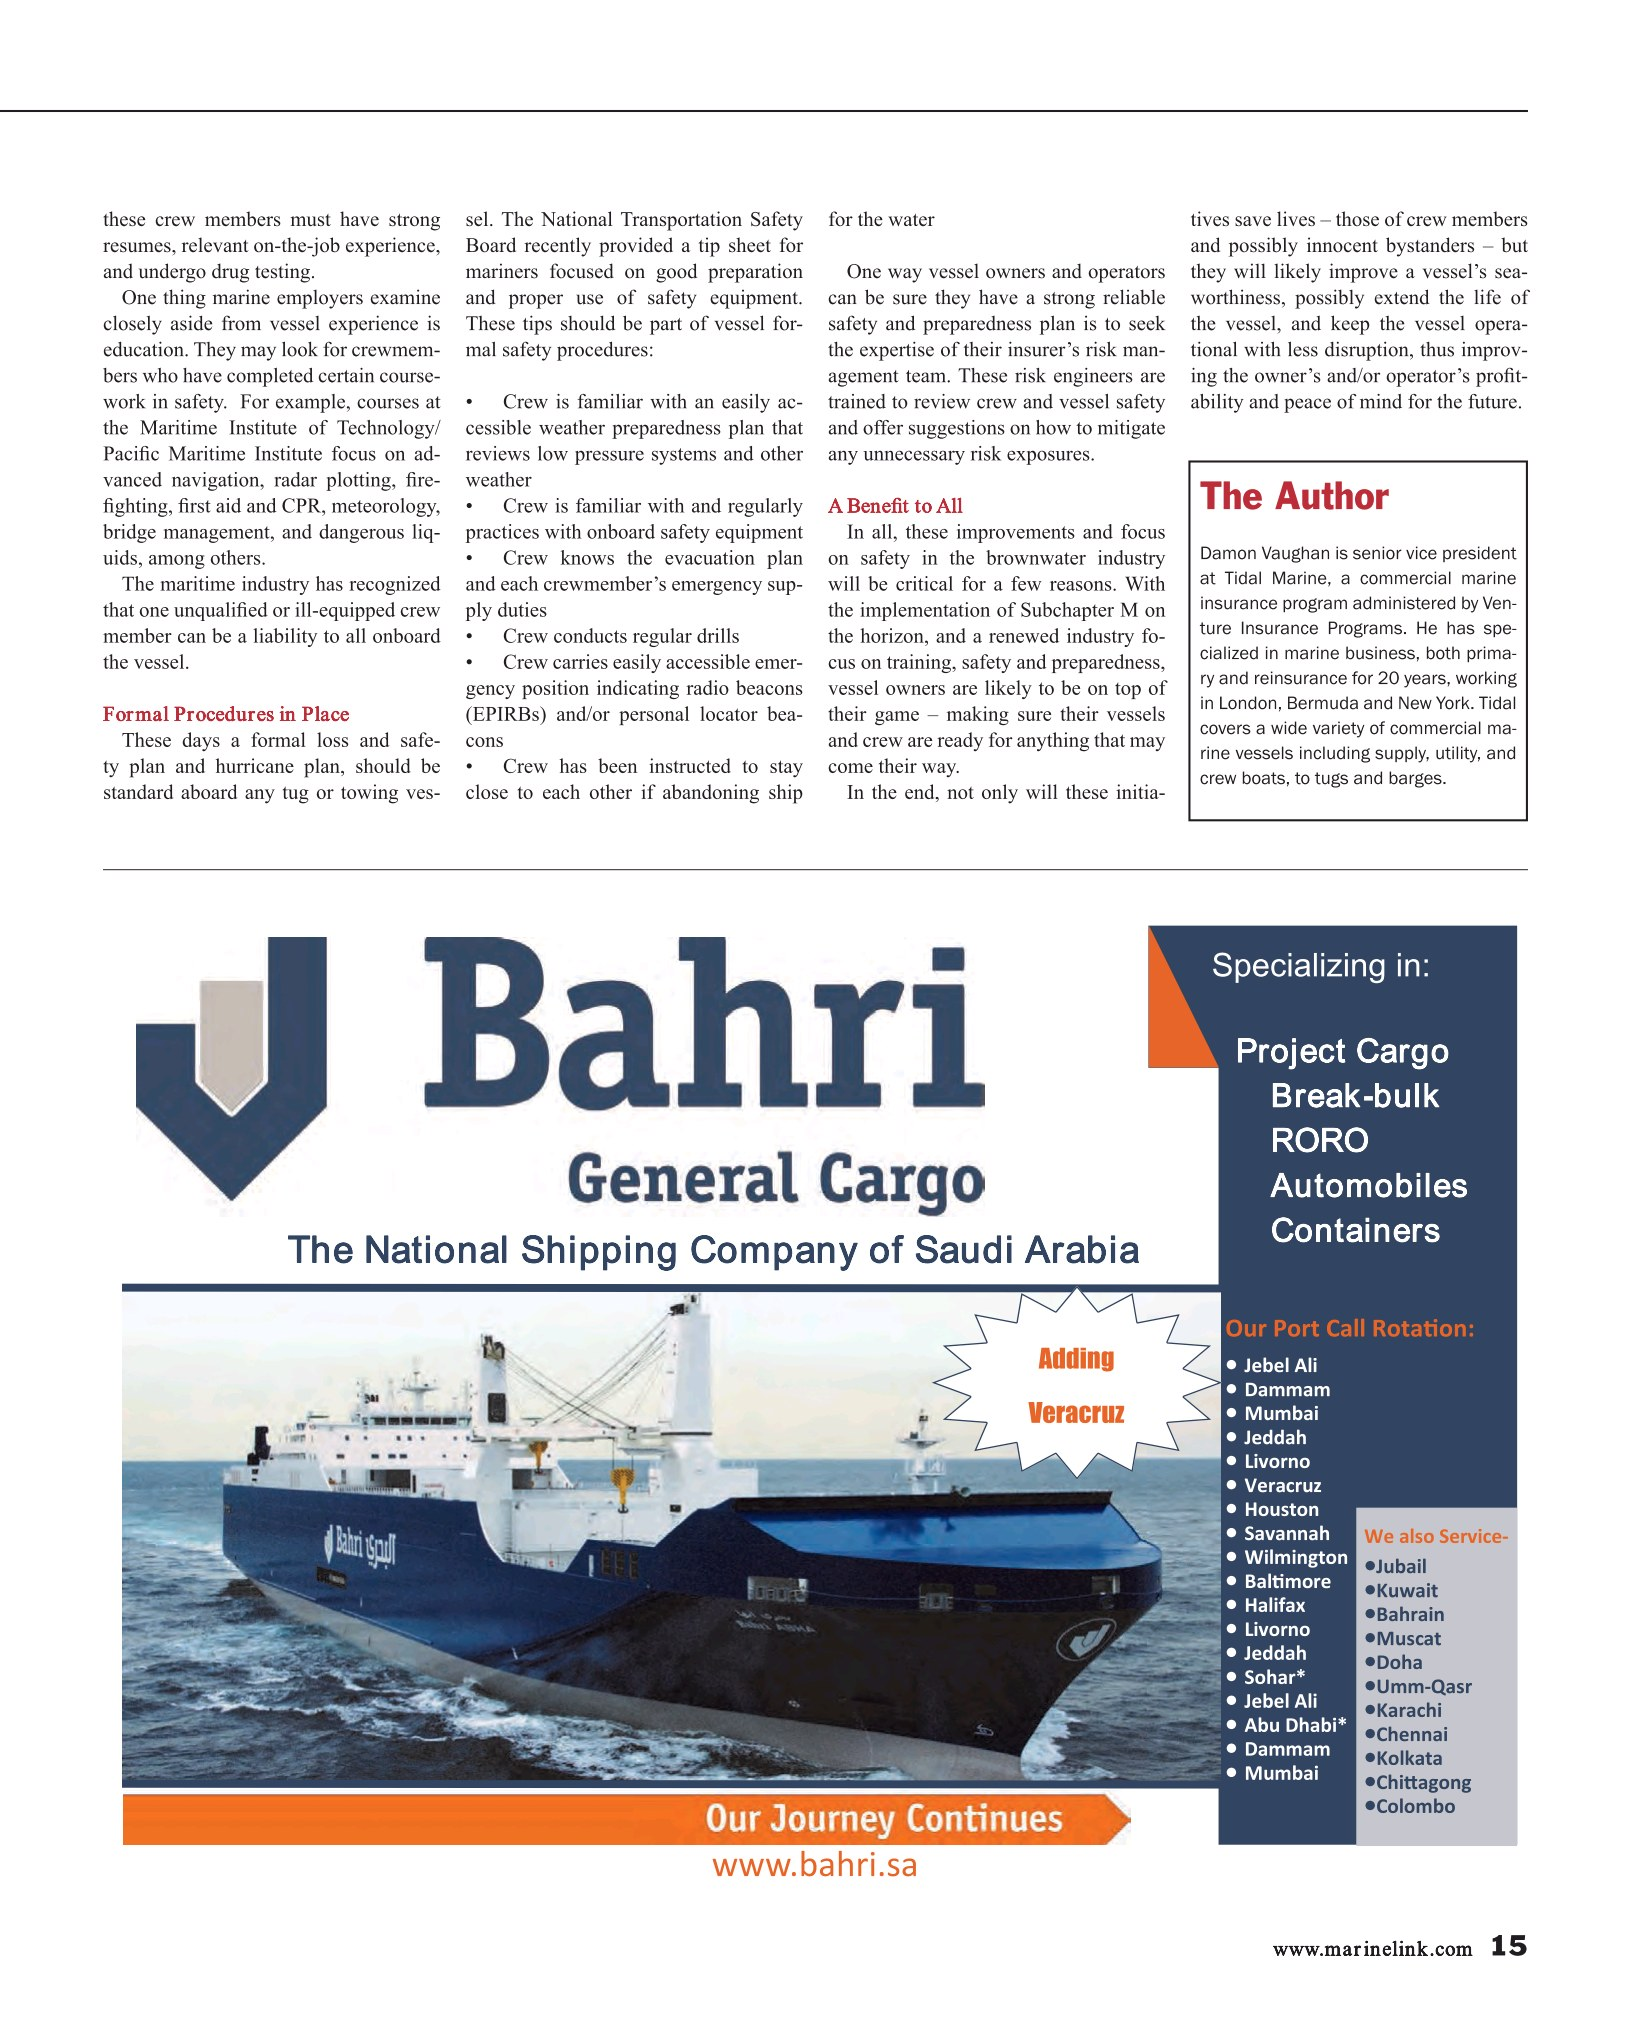 Maritime Reporter and Engineering news, July 2016 Issue